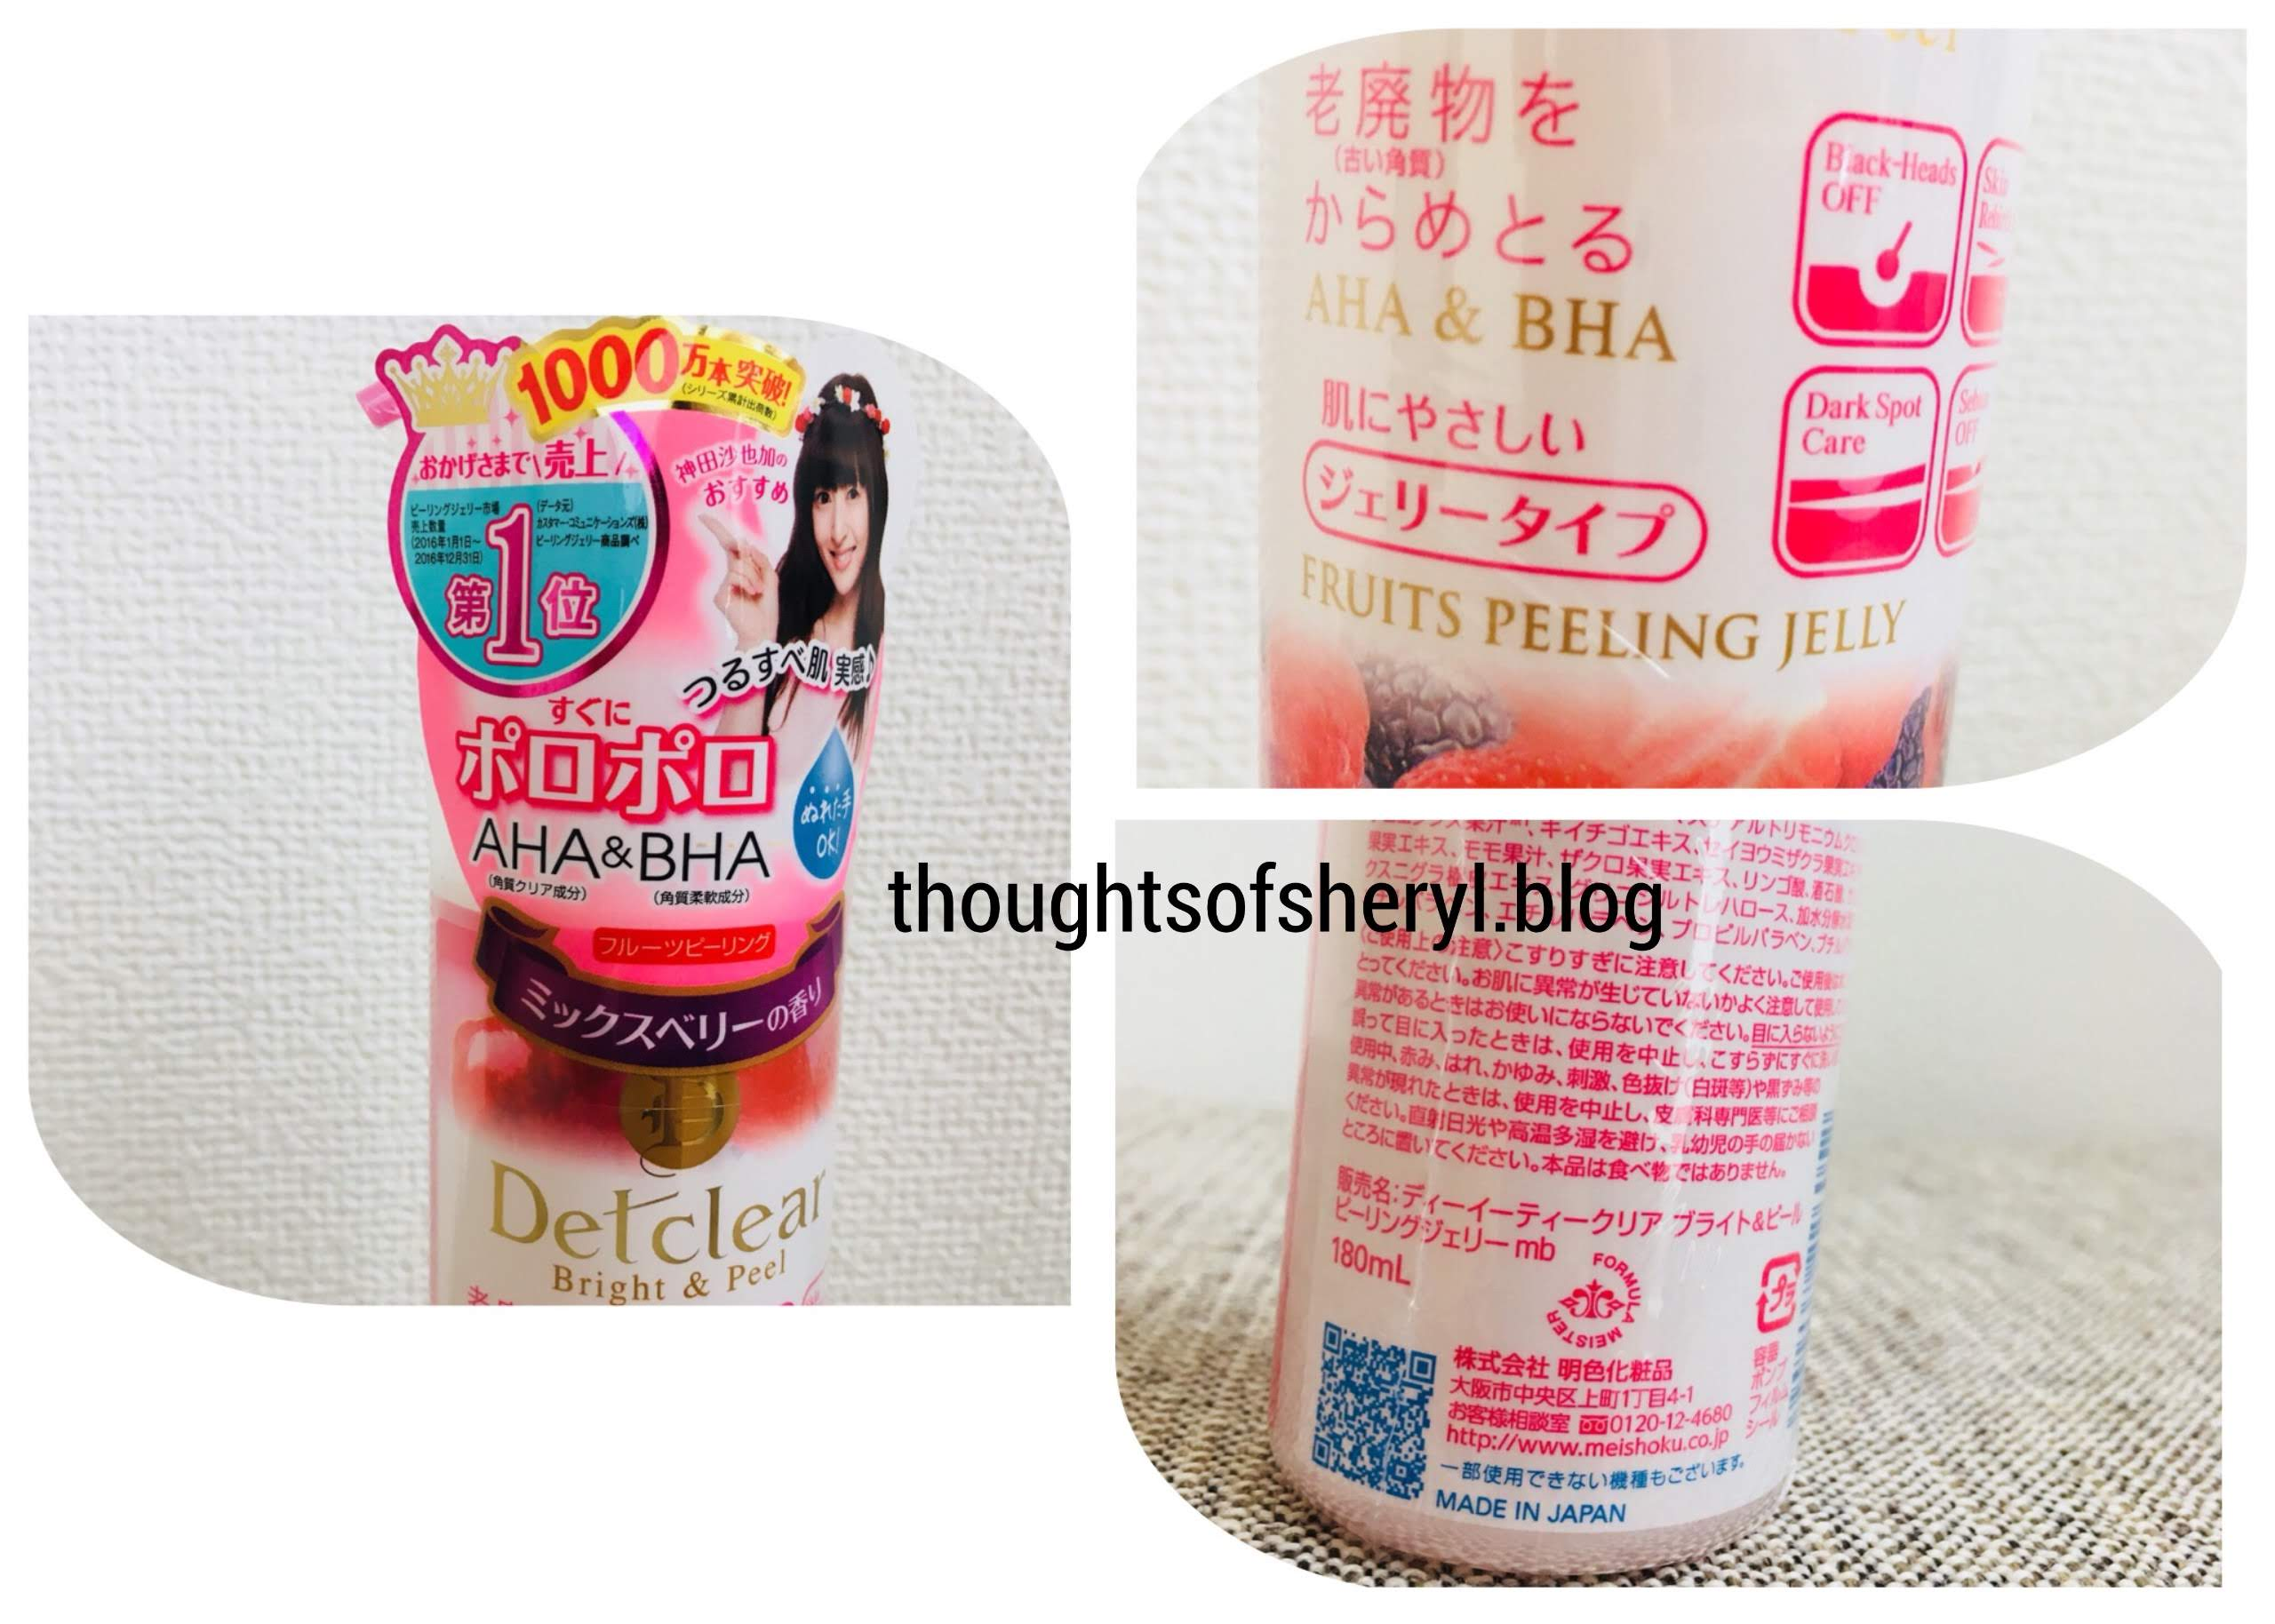 meishoku detclear peeling jelly review